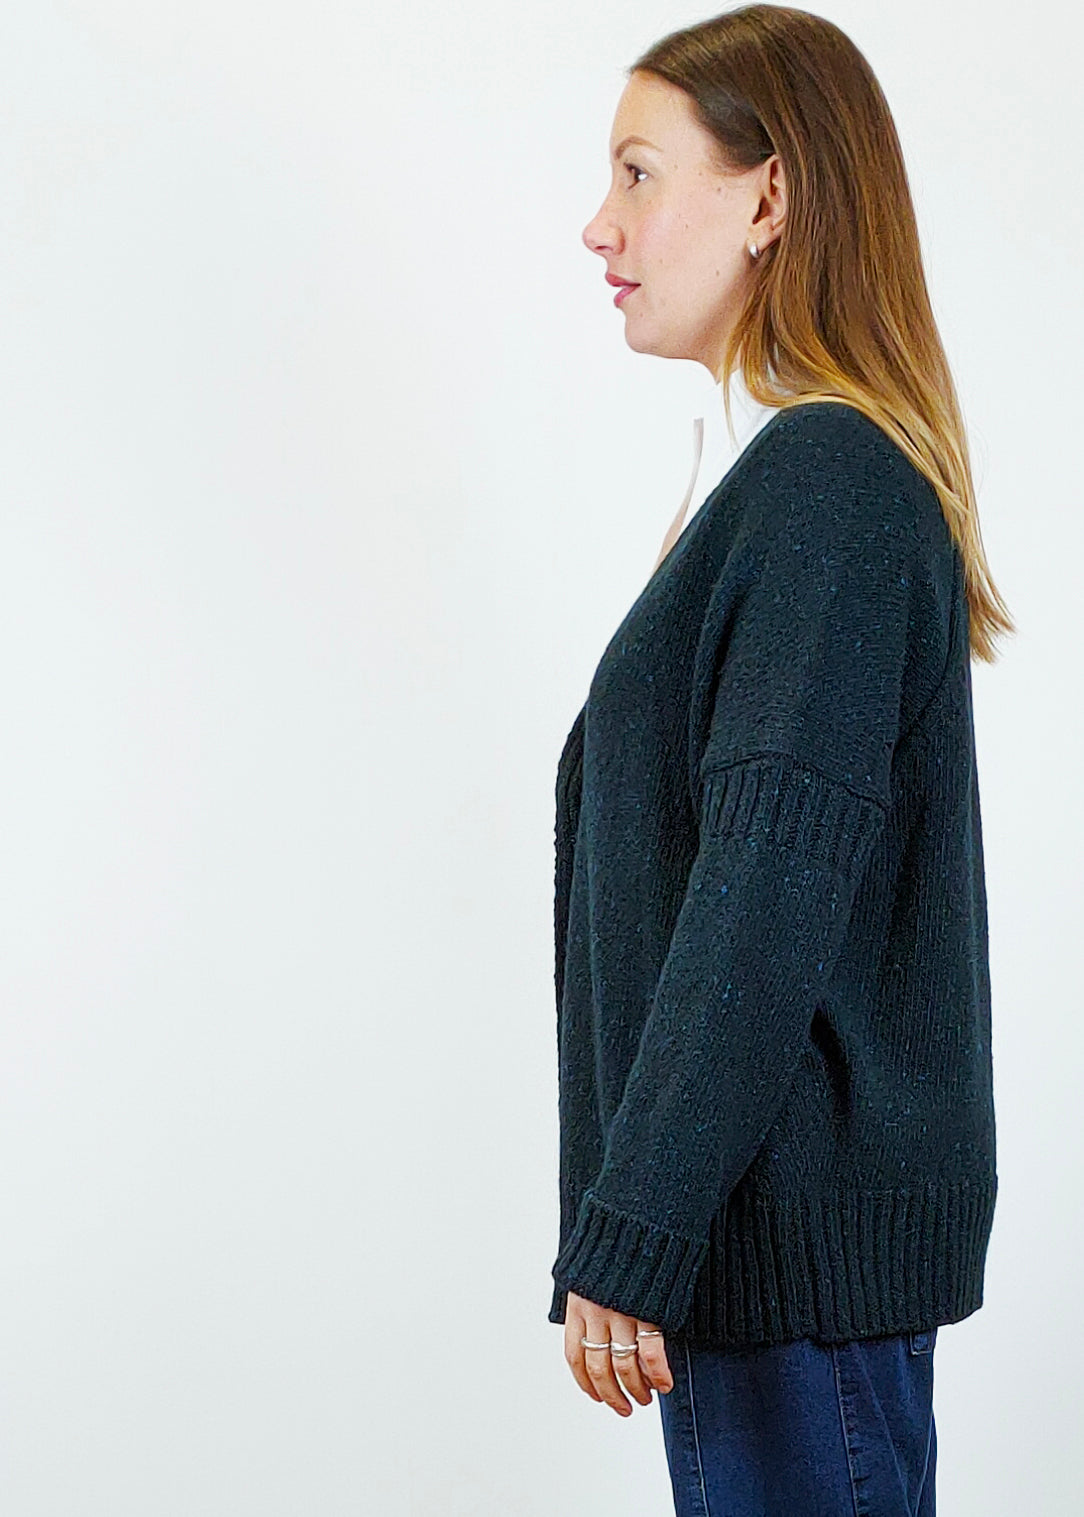 McConnell Cashmere & Wool Cardigan